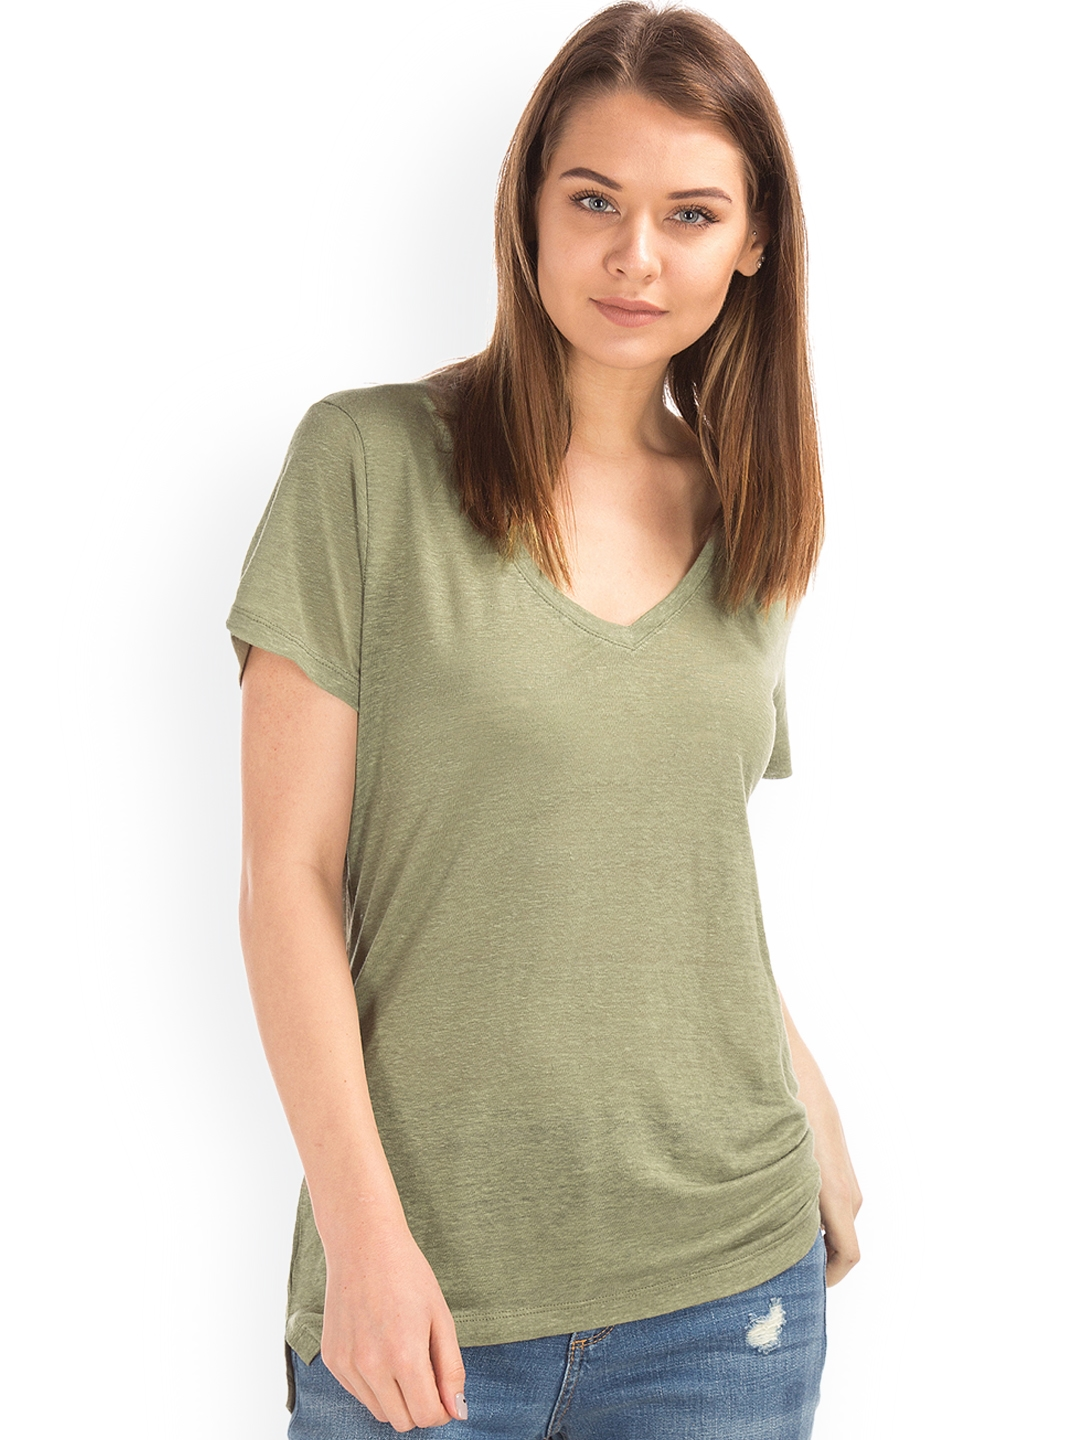 39971ddb3c Buy GAP Women Olive Green Linen V Neck T Shirt - Tshirts for Women ...